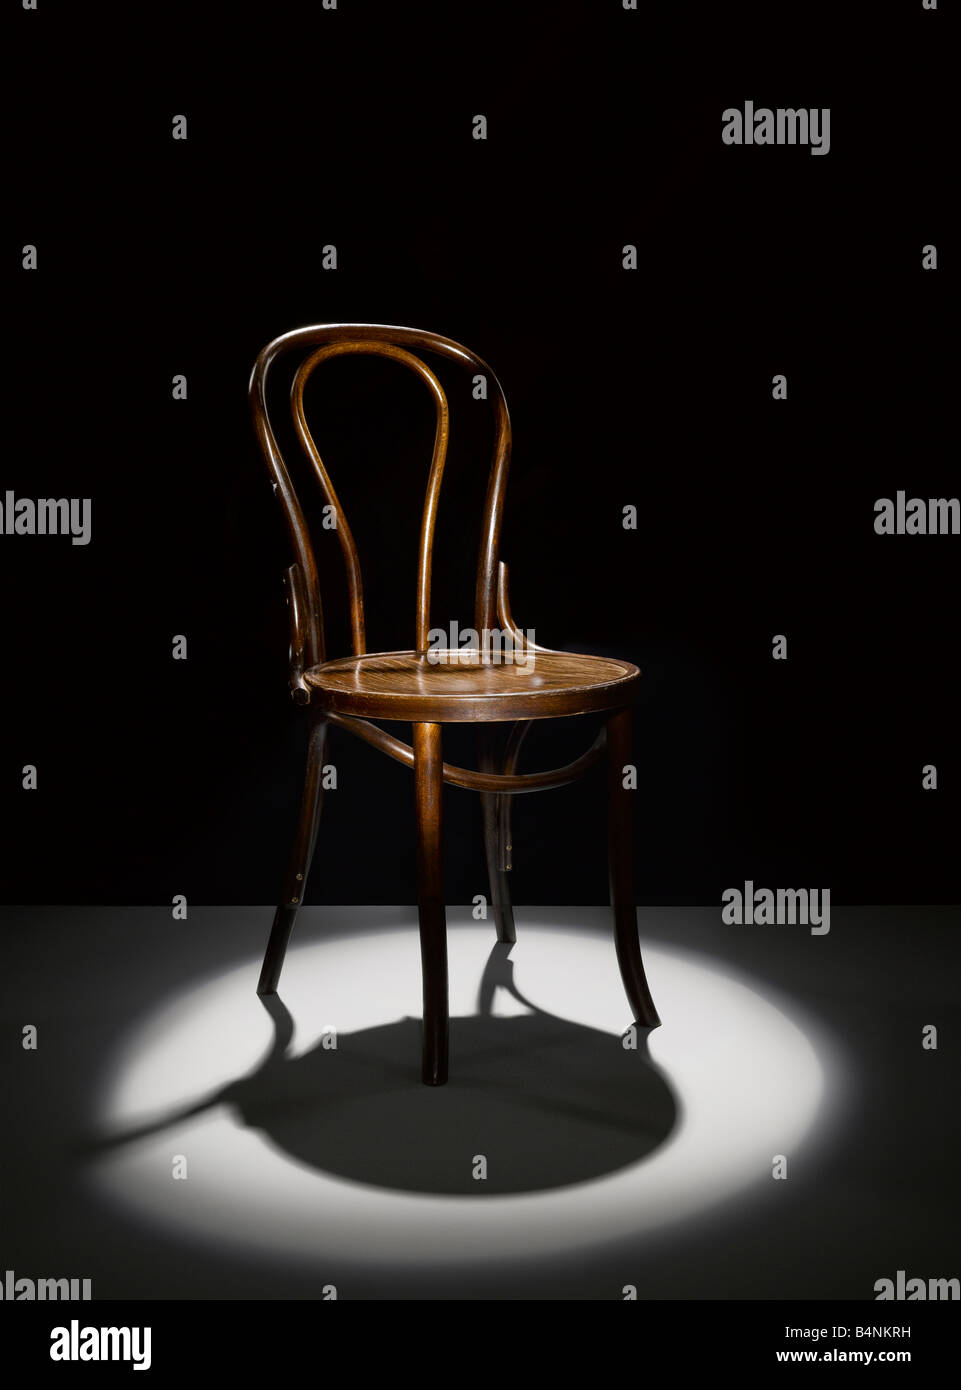 A wooden chair in the spotlight - Stock Image